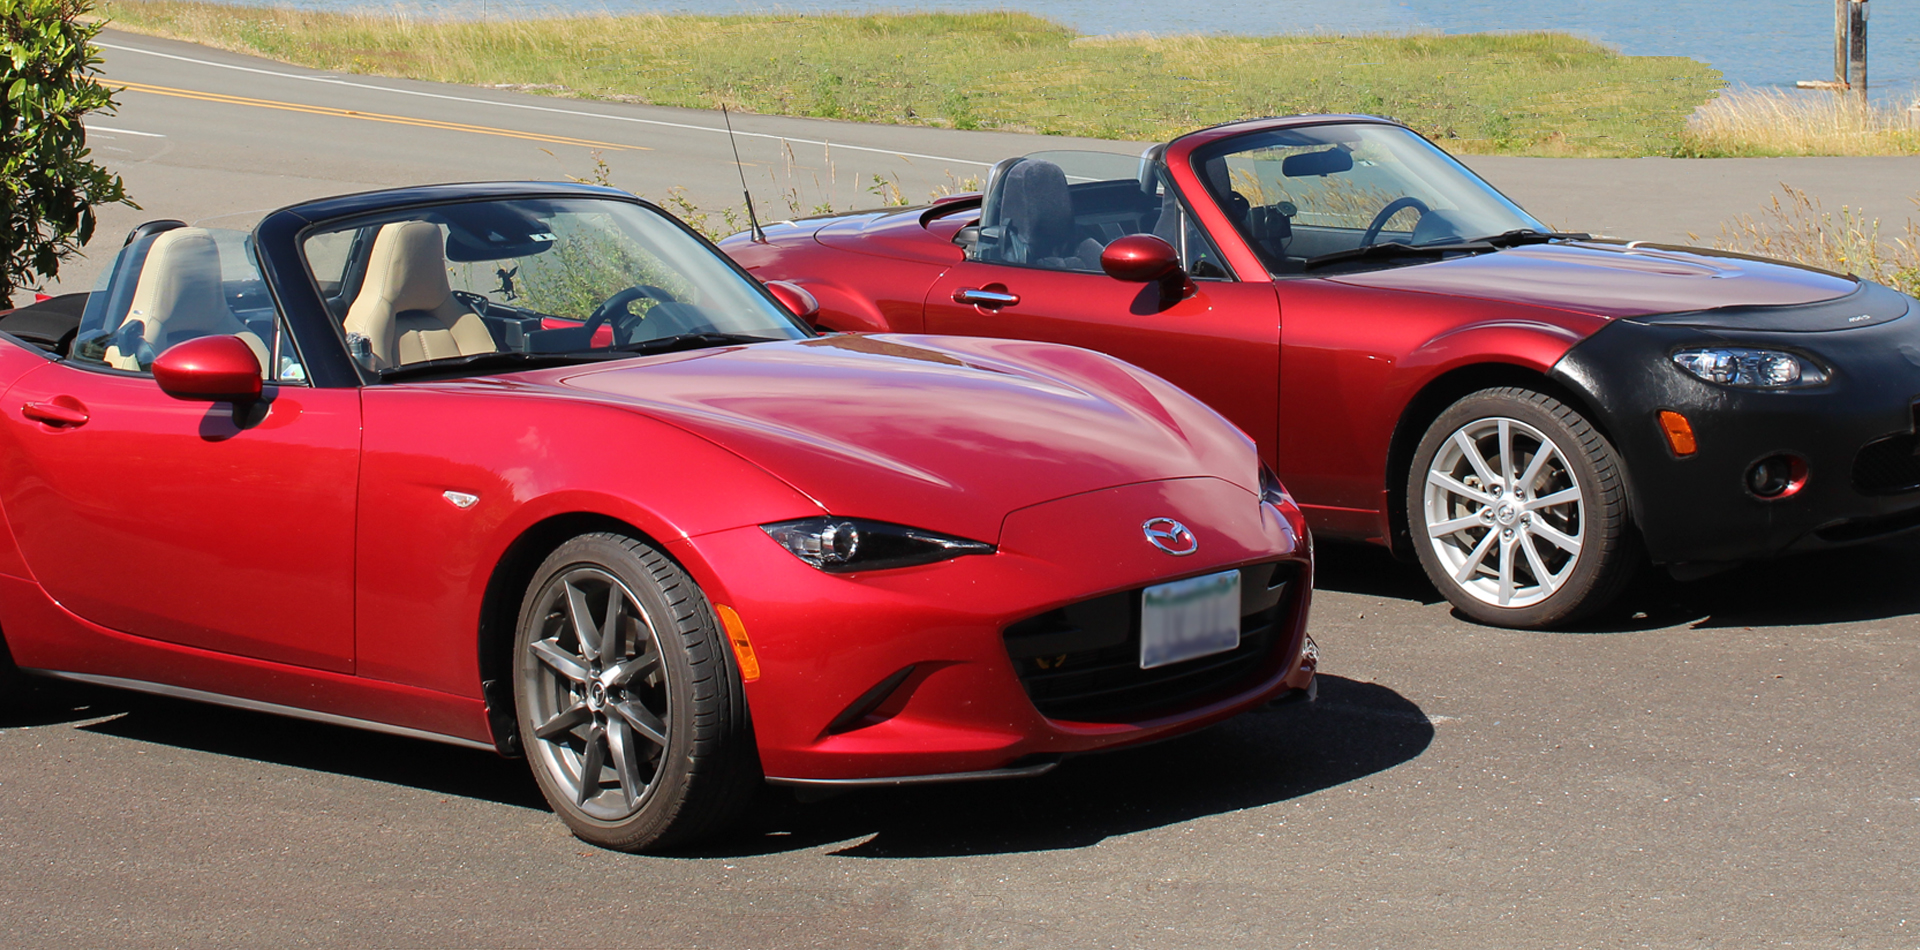 Sea to Sky Miata Club